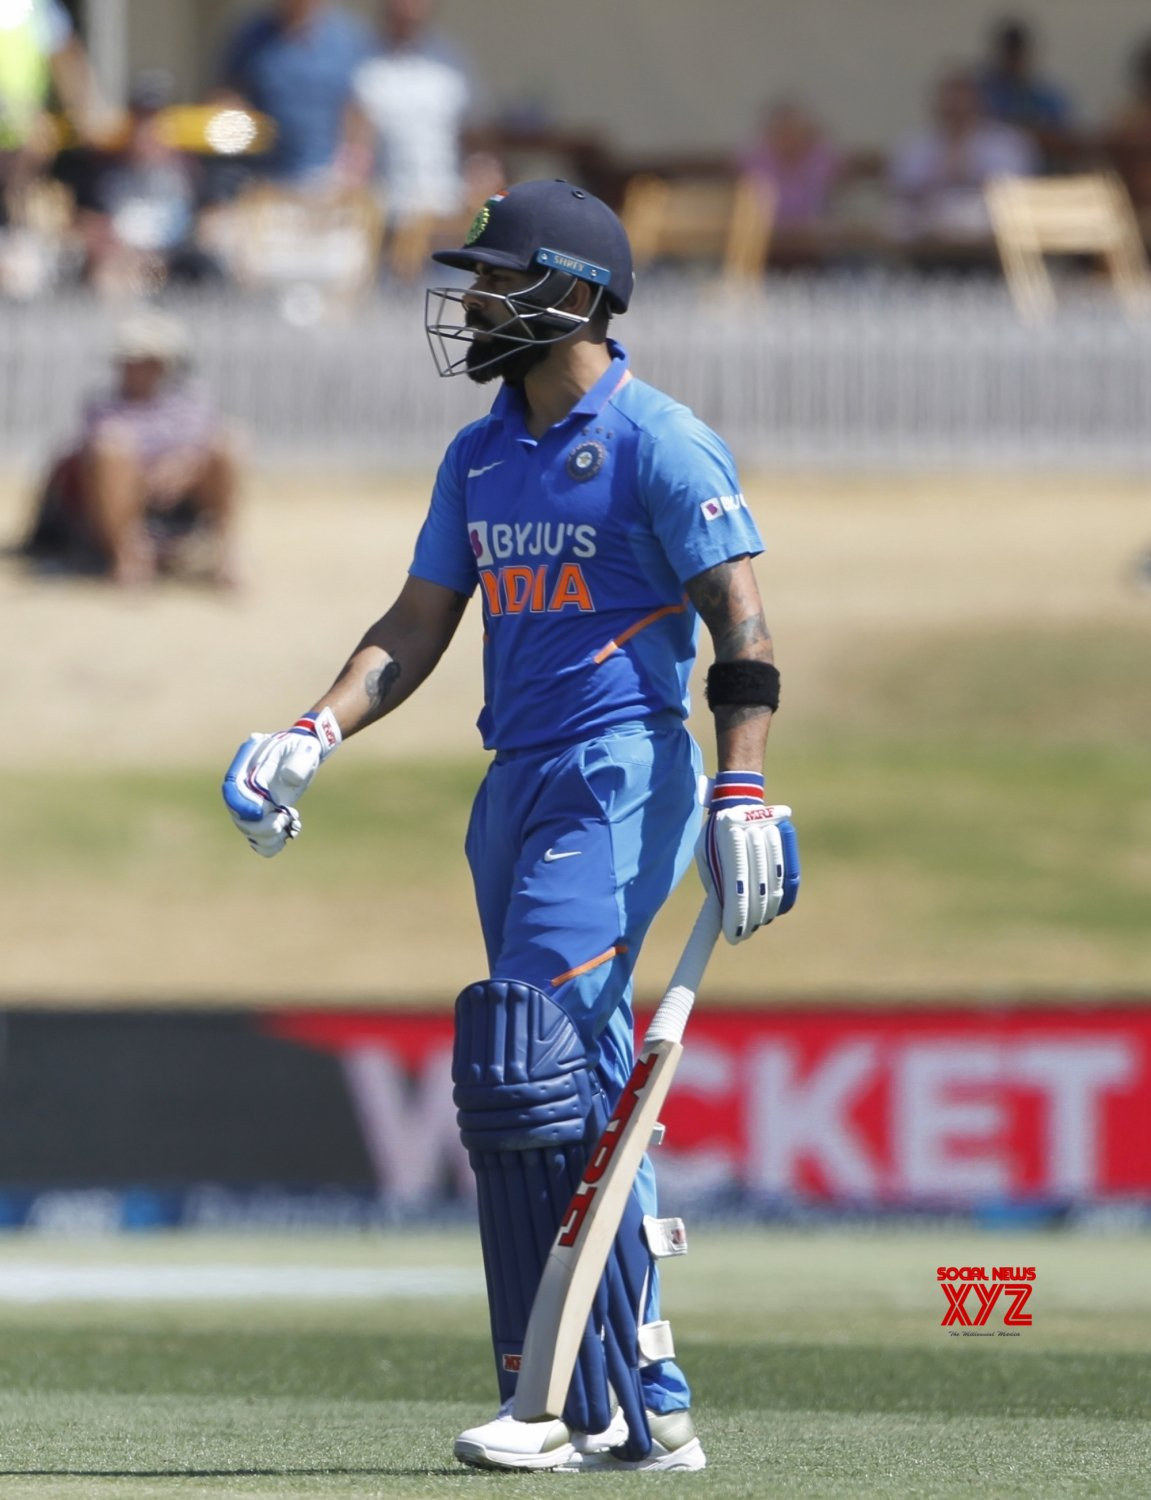 Mount Maunganui: 3rd ODI - India Vs New Zealand (Batch - 1) #Gallery